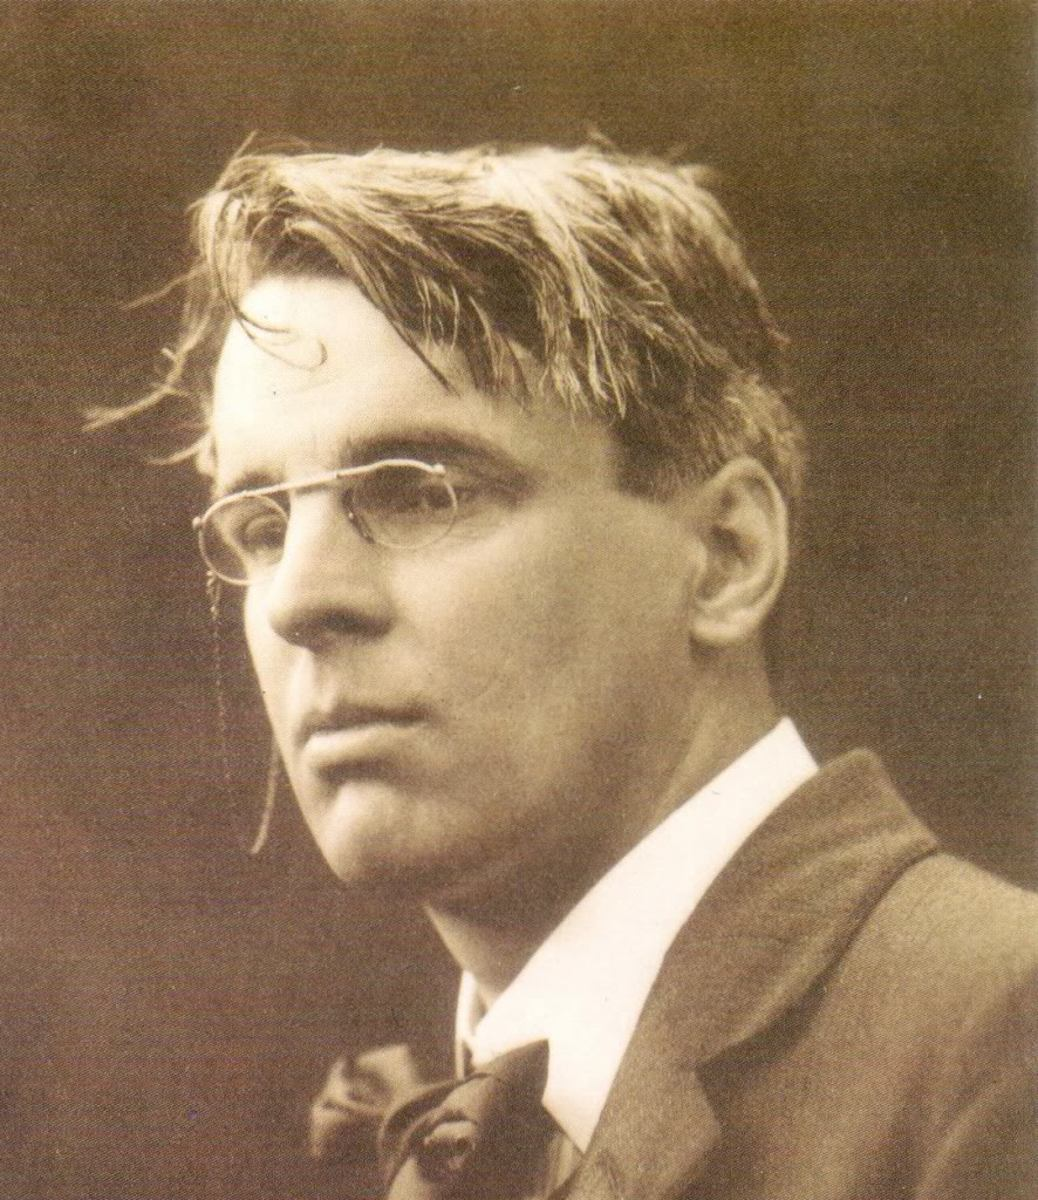 """A Drinking Song"" by William Butler Yeats, Including a Brief Biography"